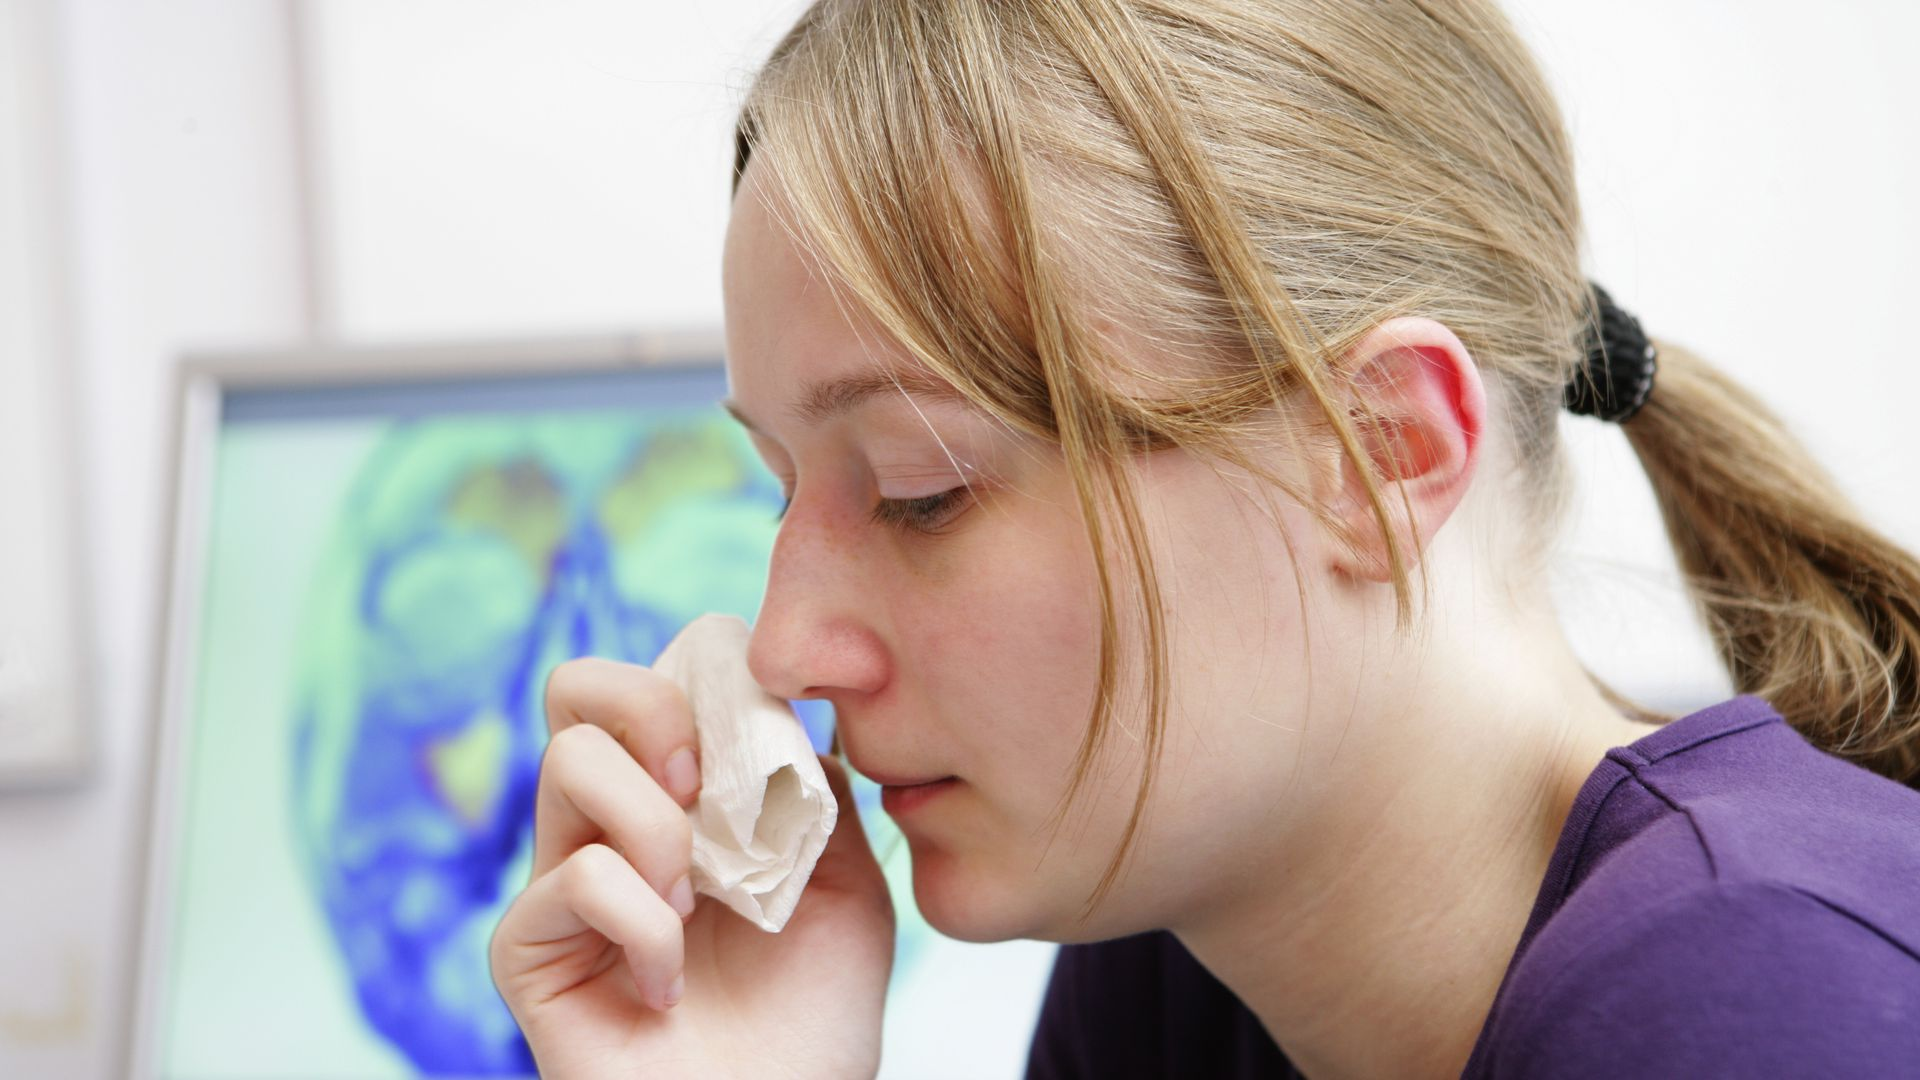 A woman wipes her nose with a tissue.